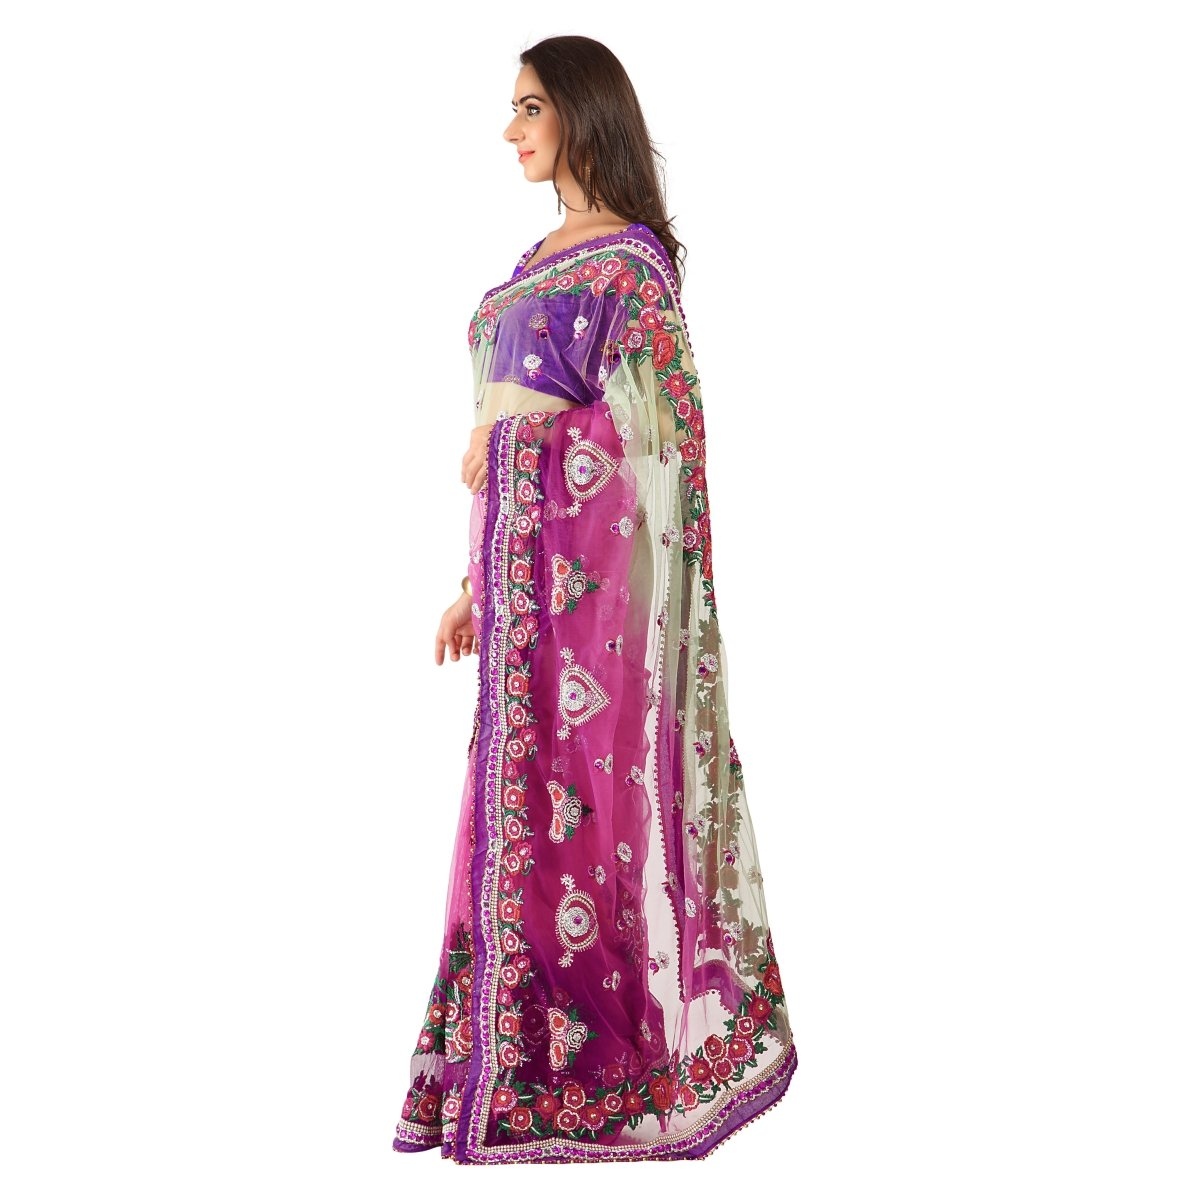 Triveni Women's Indian Pink Net Embroidered Sarees by Triveni (Image #2)